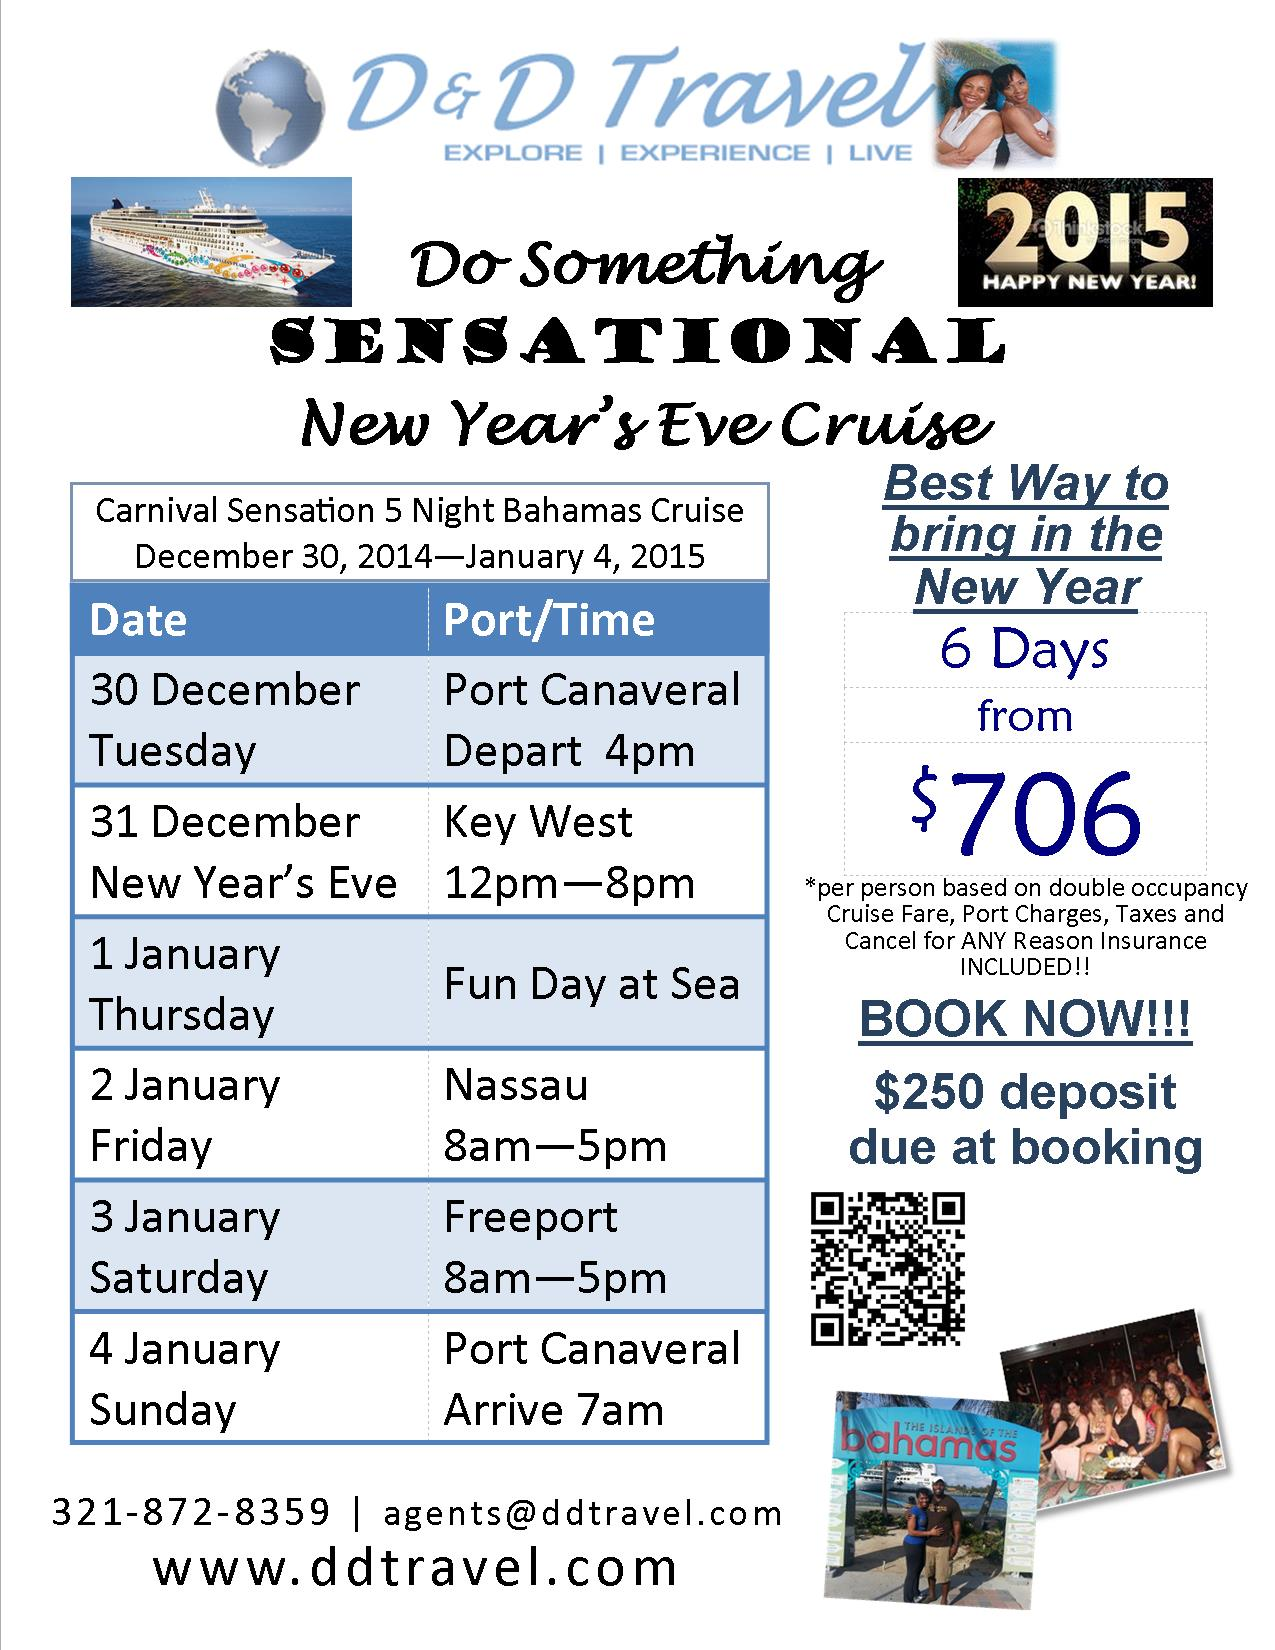 New Year's Eve 2015 from $706